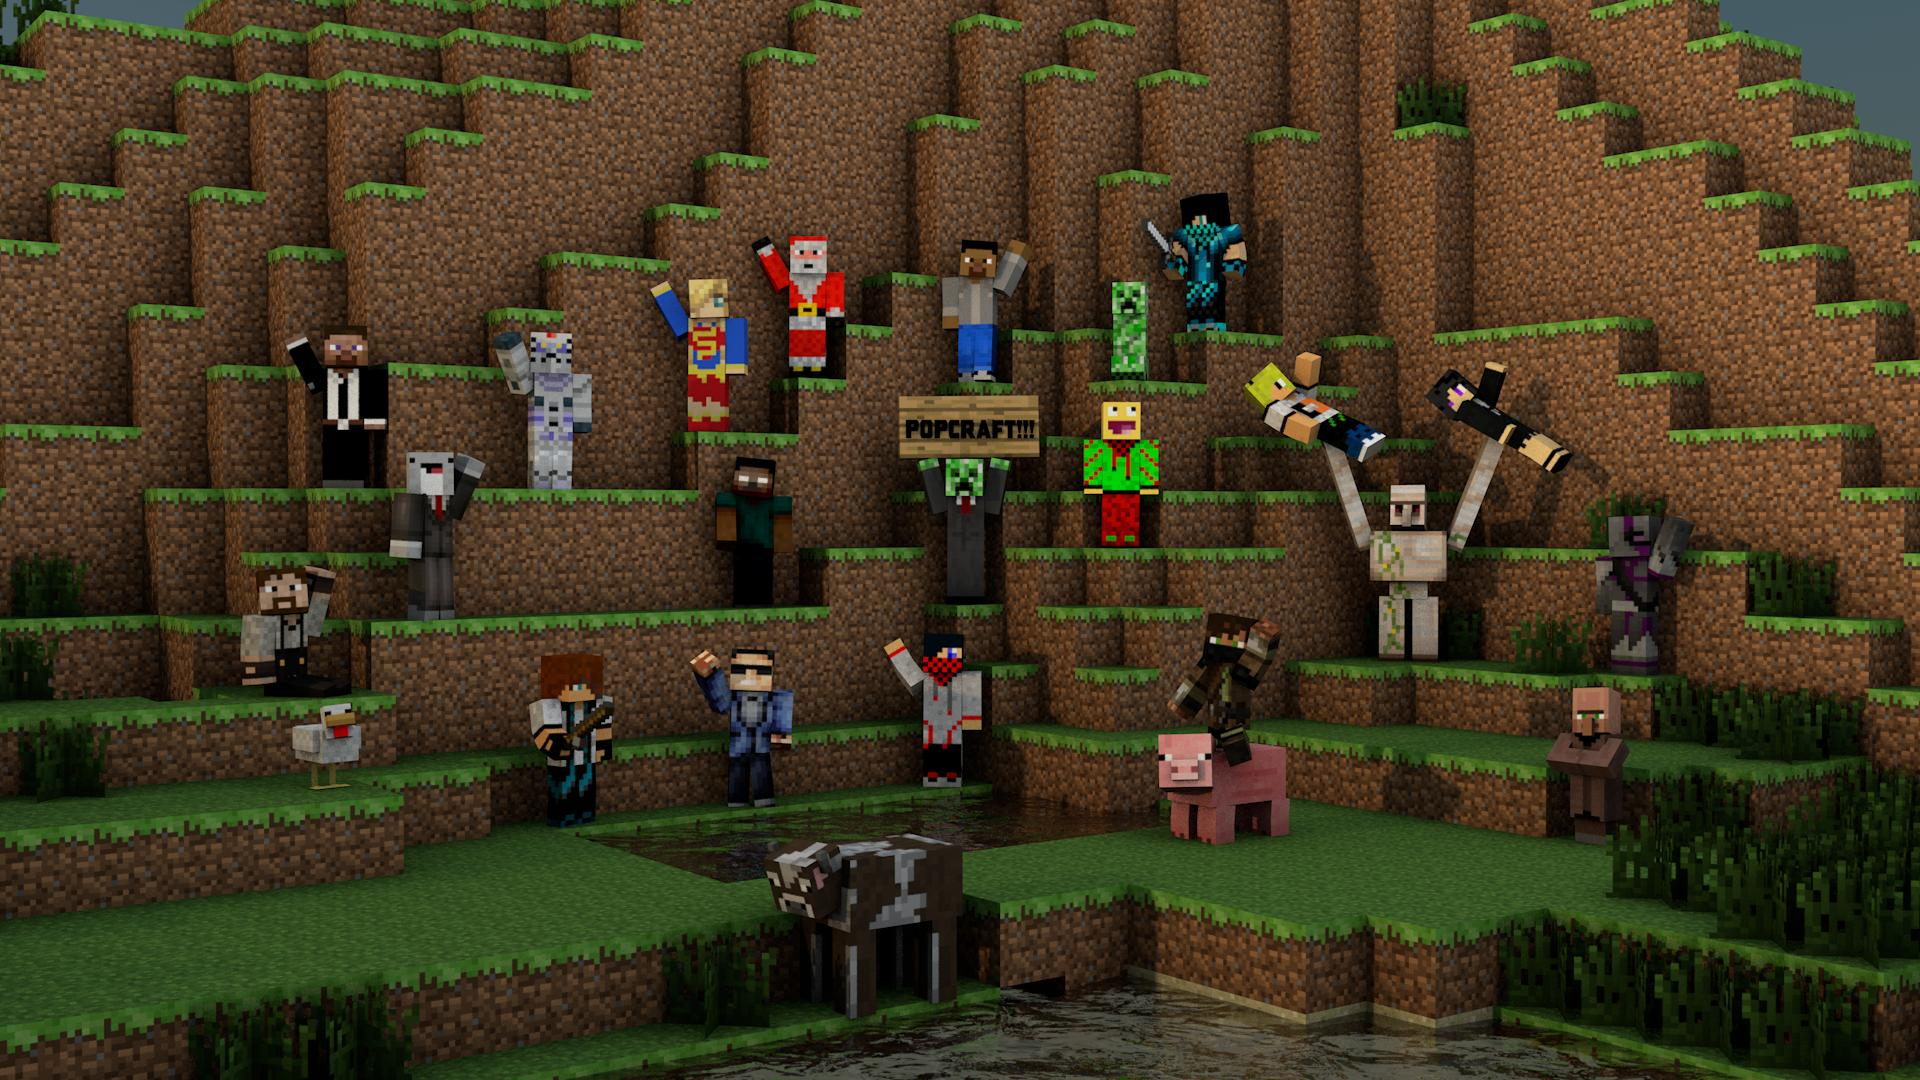 1920x1080px 3d Minecraft Wallpapers Wallpapersafari